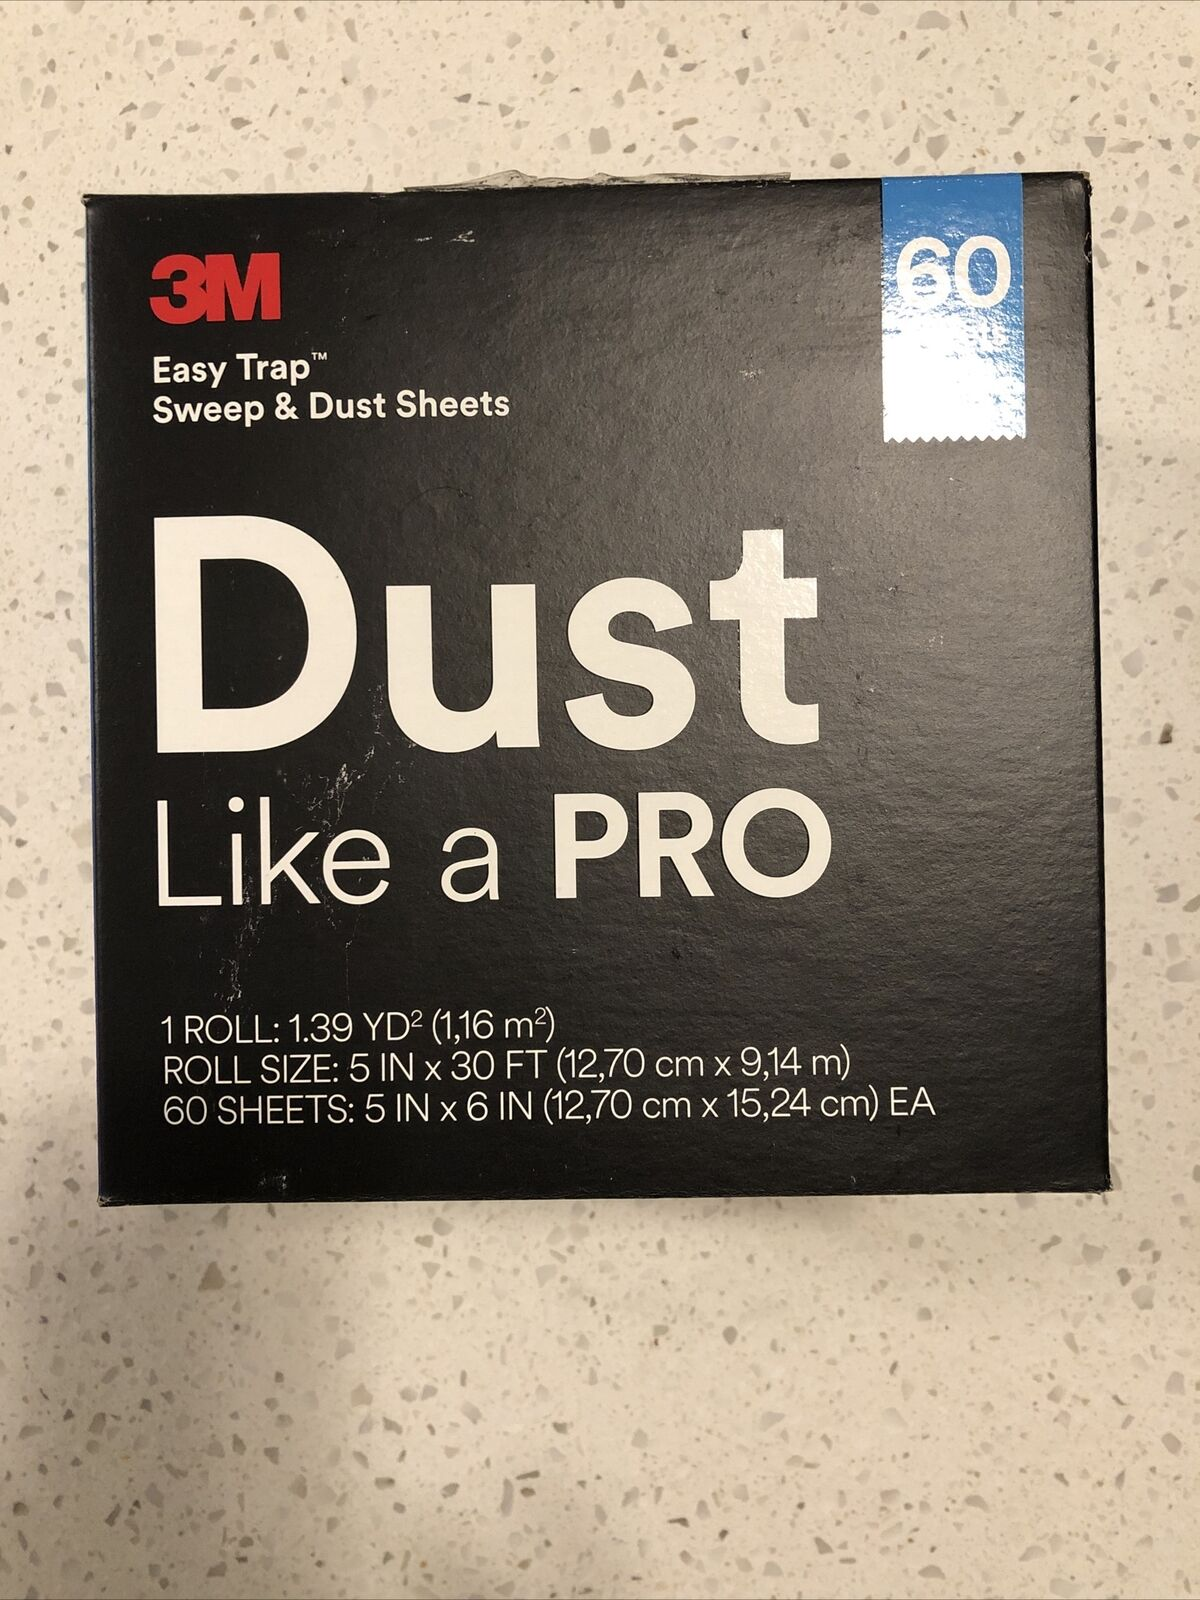 """3M Easy Trap Sweep & Dust Sheets (Like a Pro) 60 Sheets 1 Roll 5"""" X 30'"""